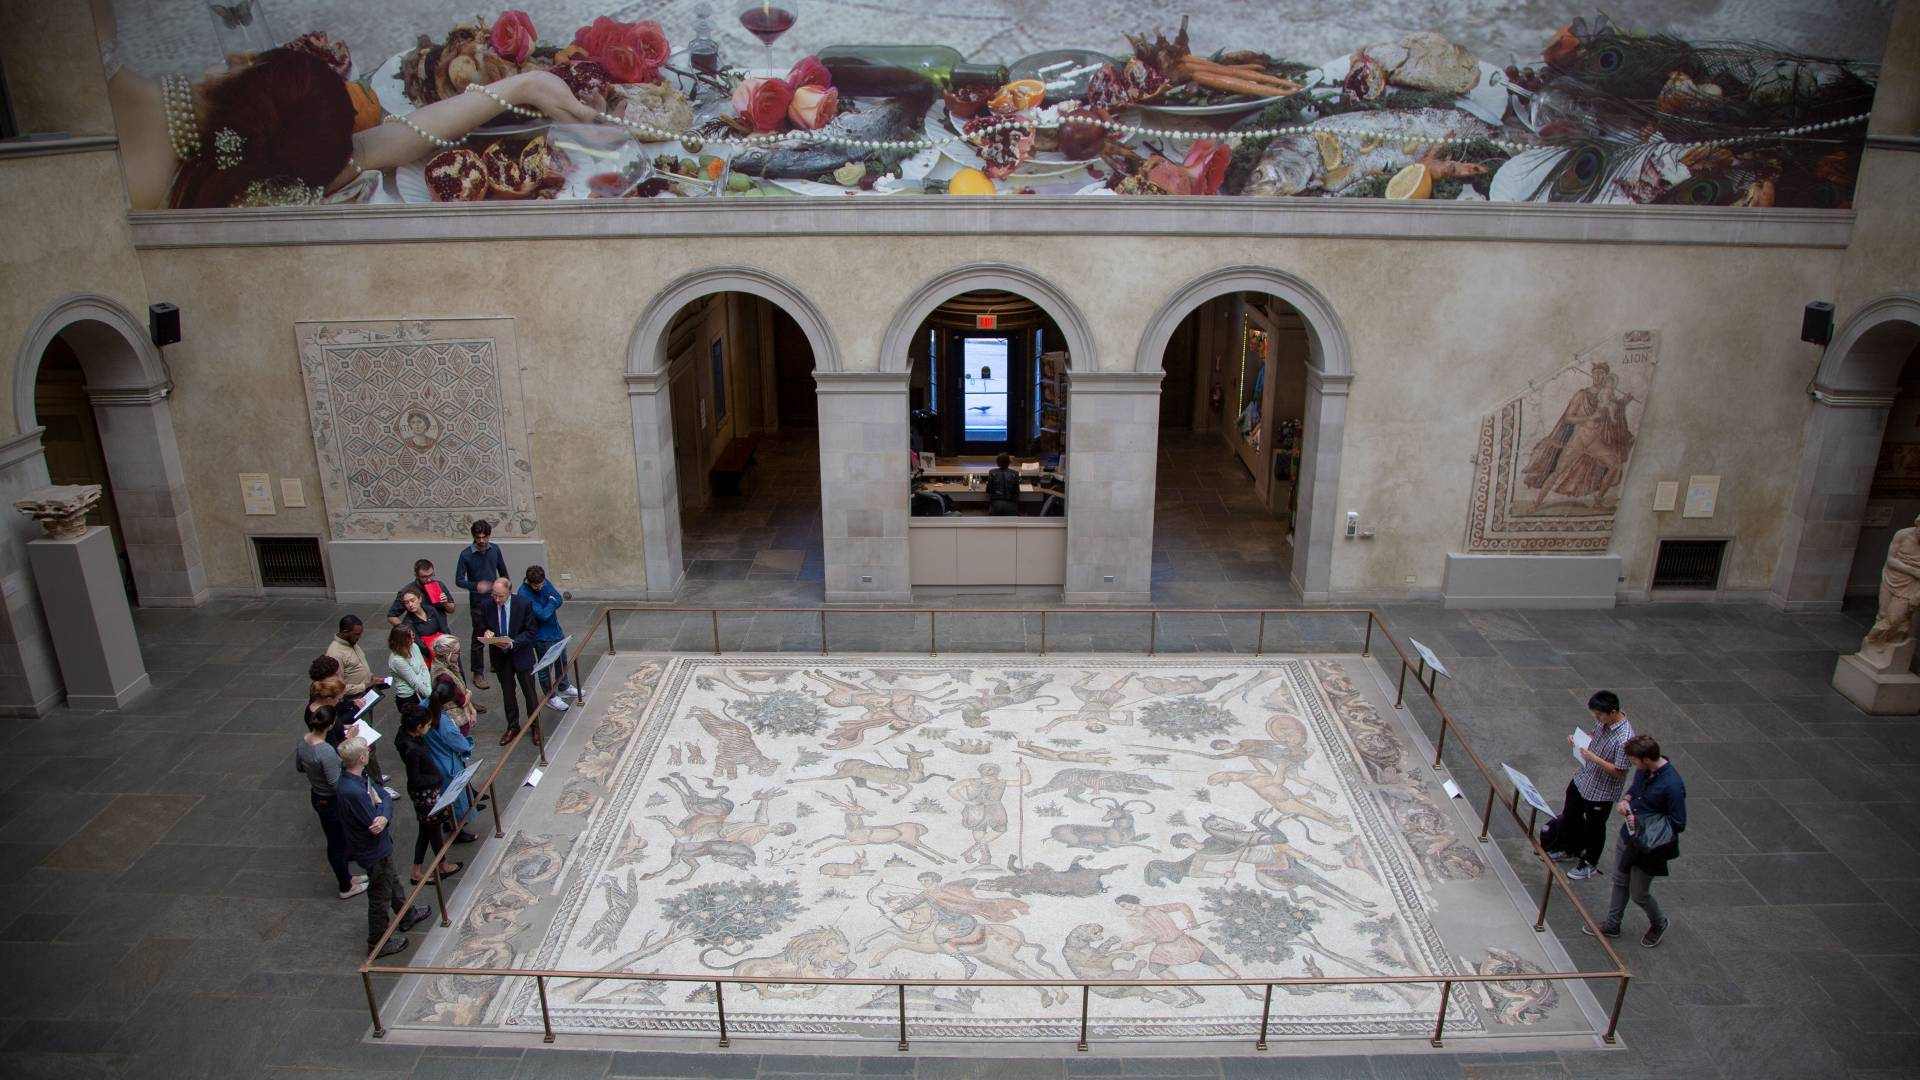 Aerial view of large mosaic and wall painting at Worcester Art Museum